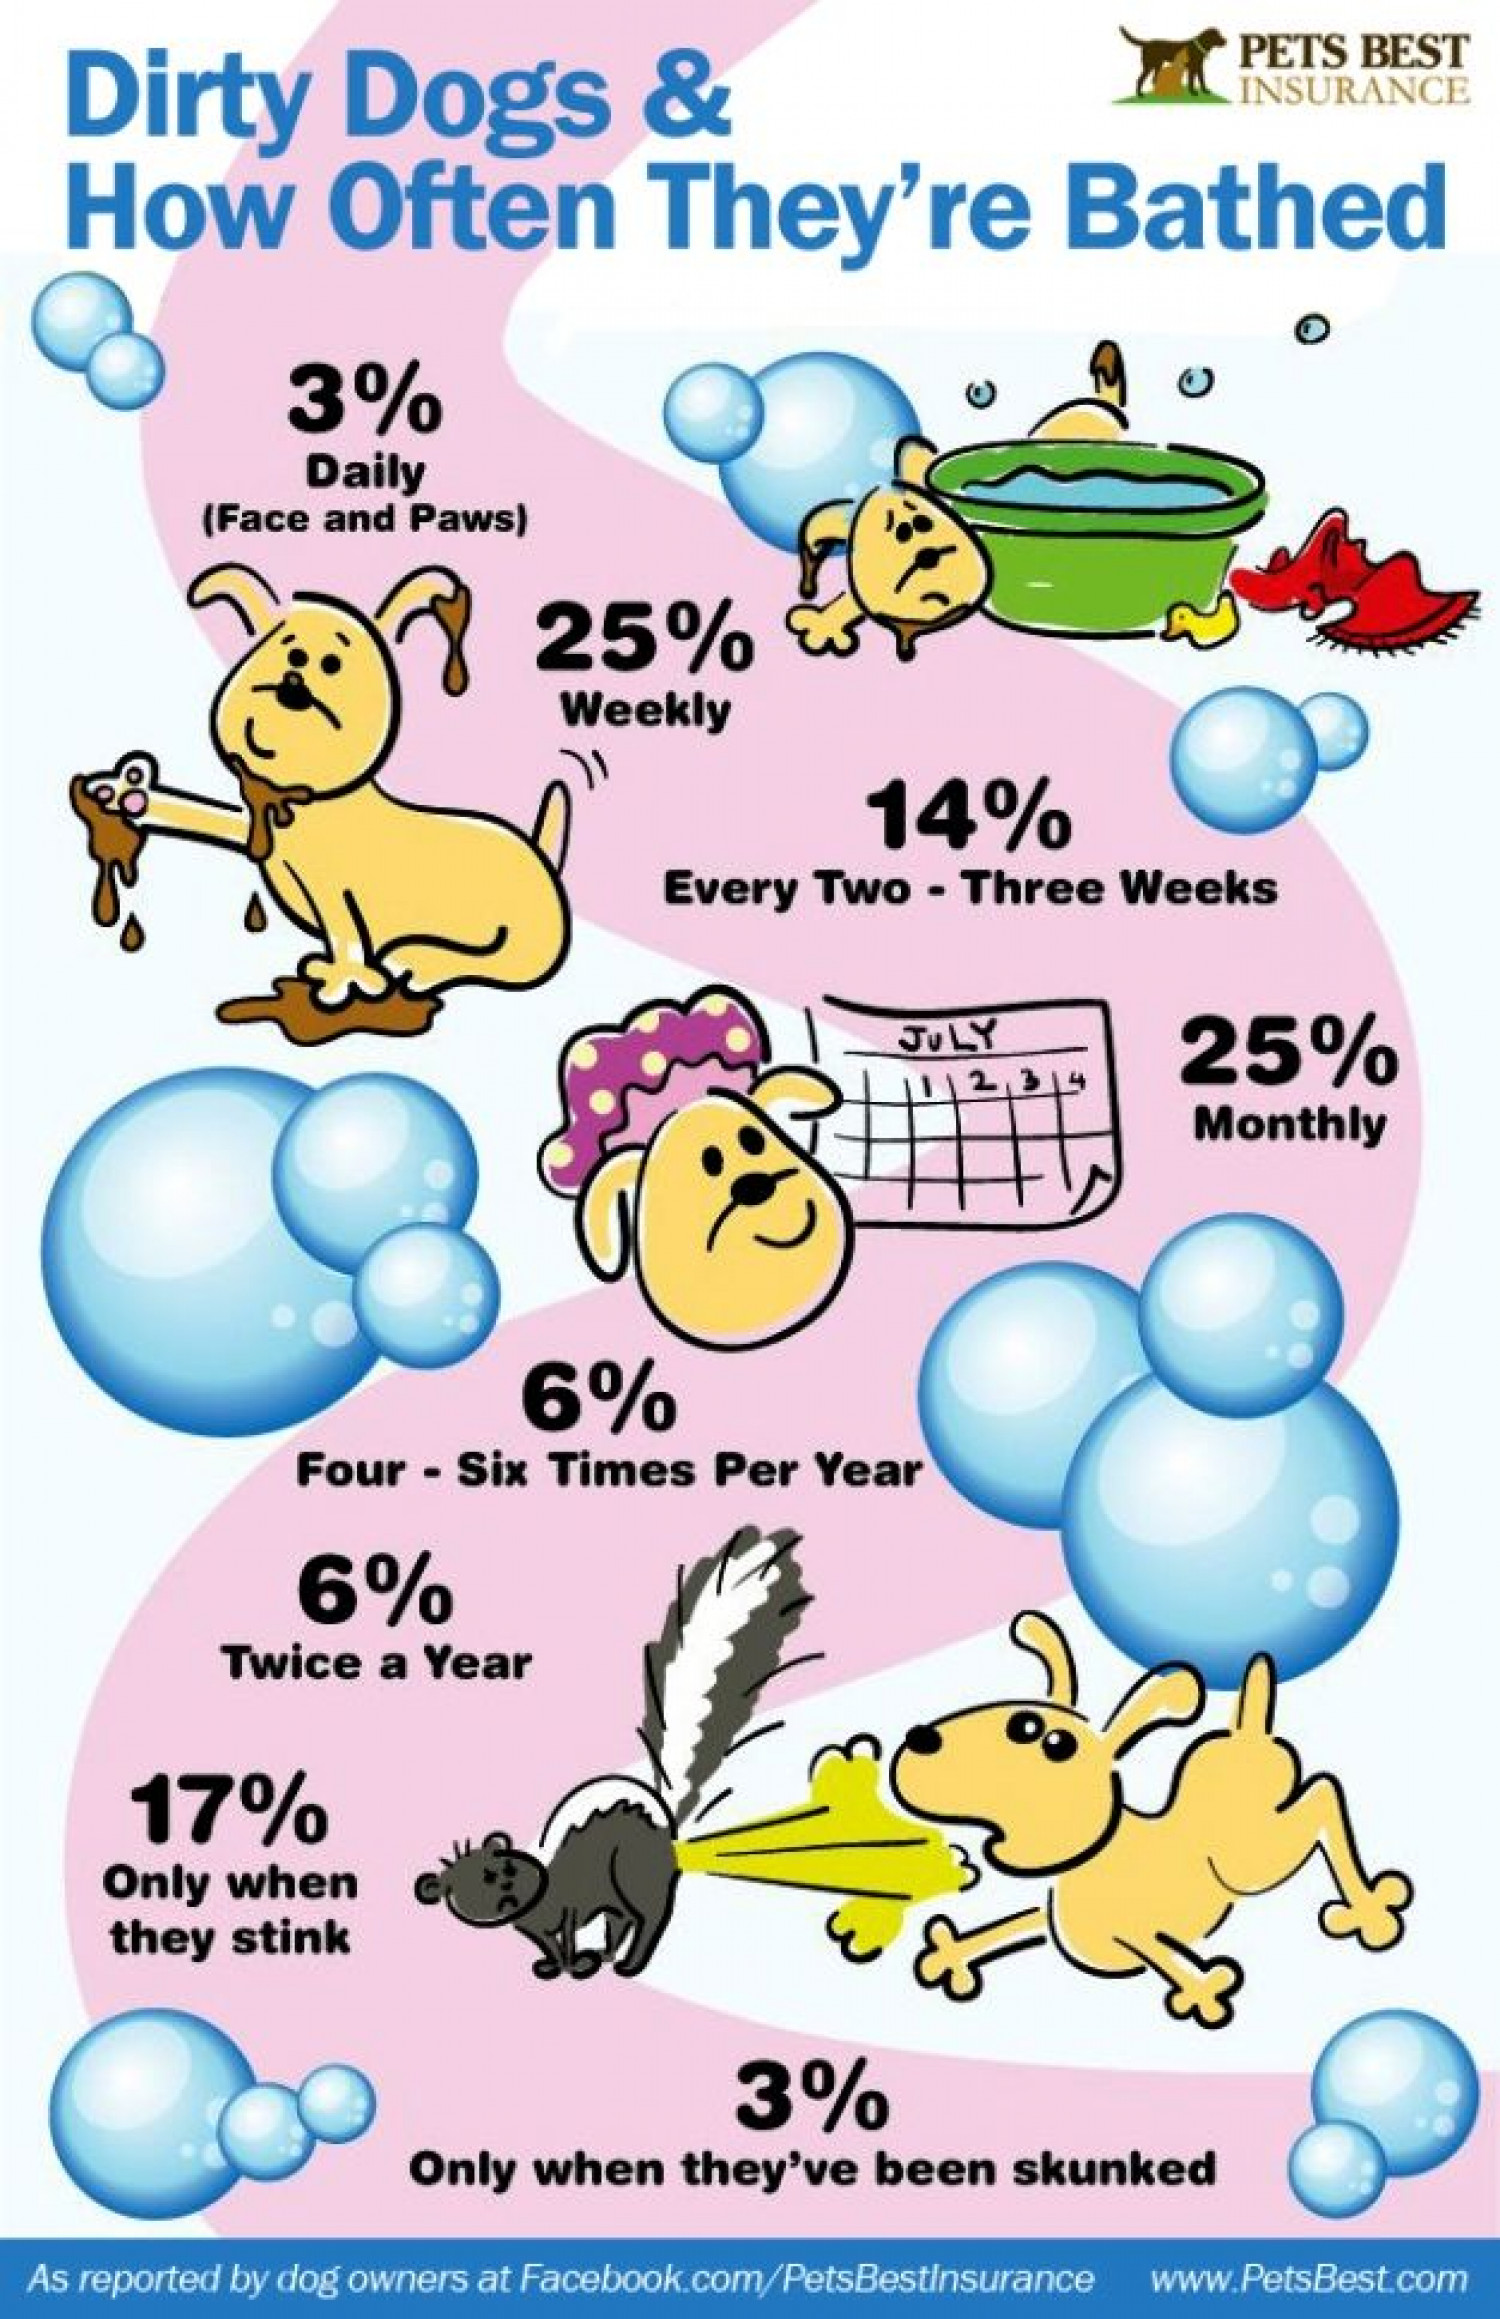 Dirty Dogs and How Often They're Bathed Infographic